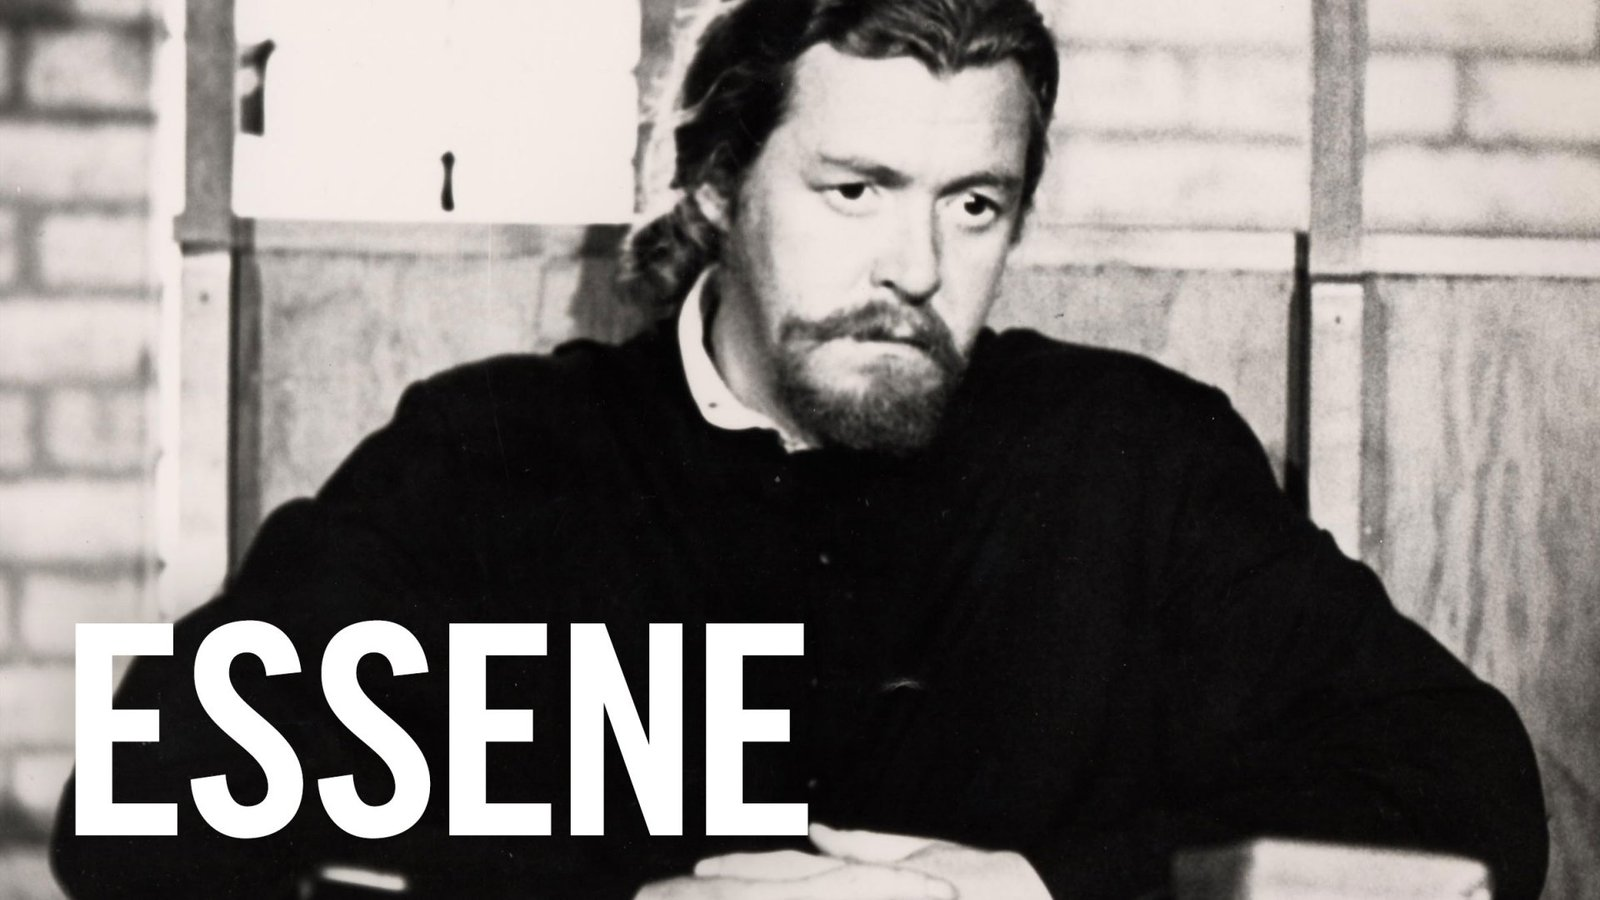 Essene - Daily Life in a Benedictine Monastery